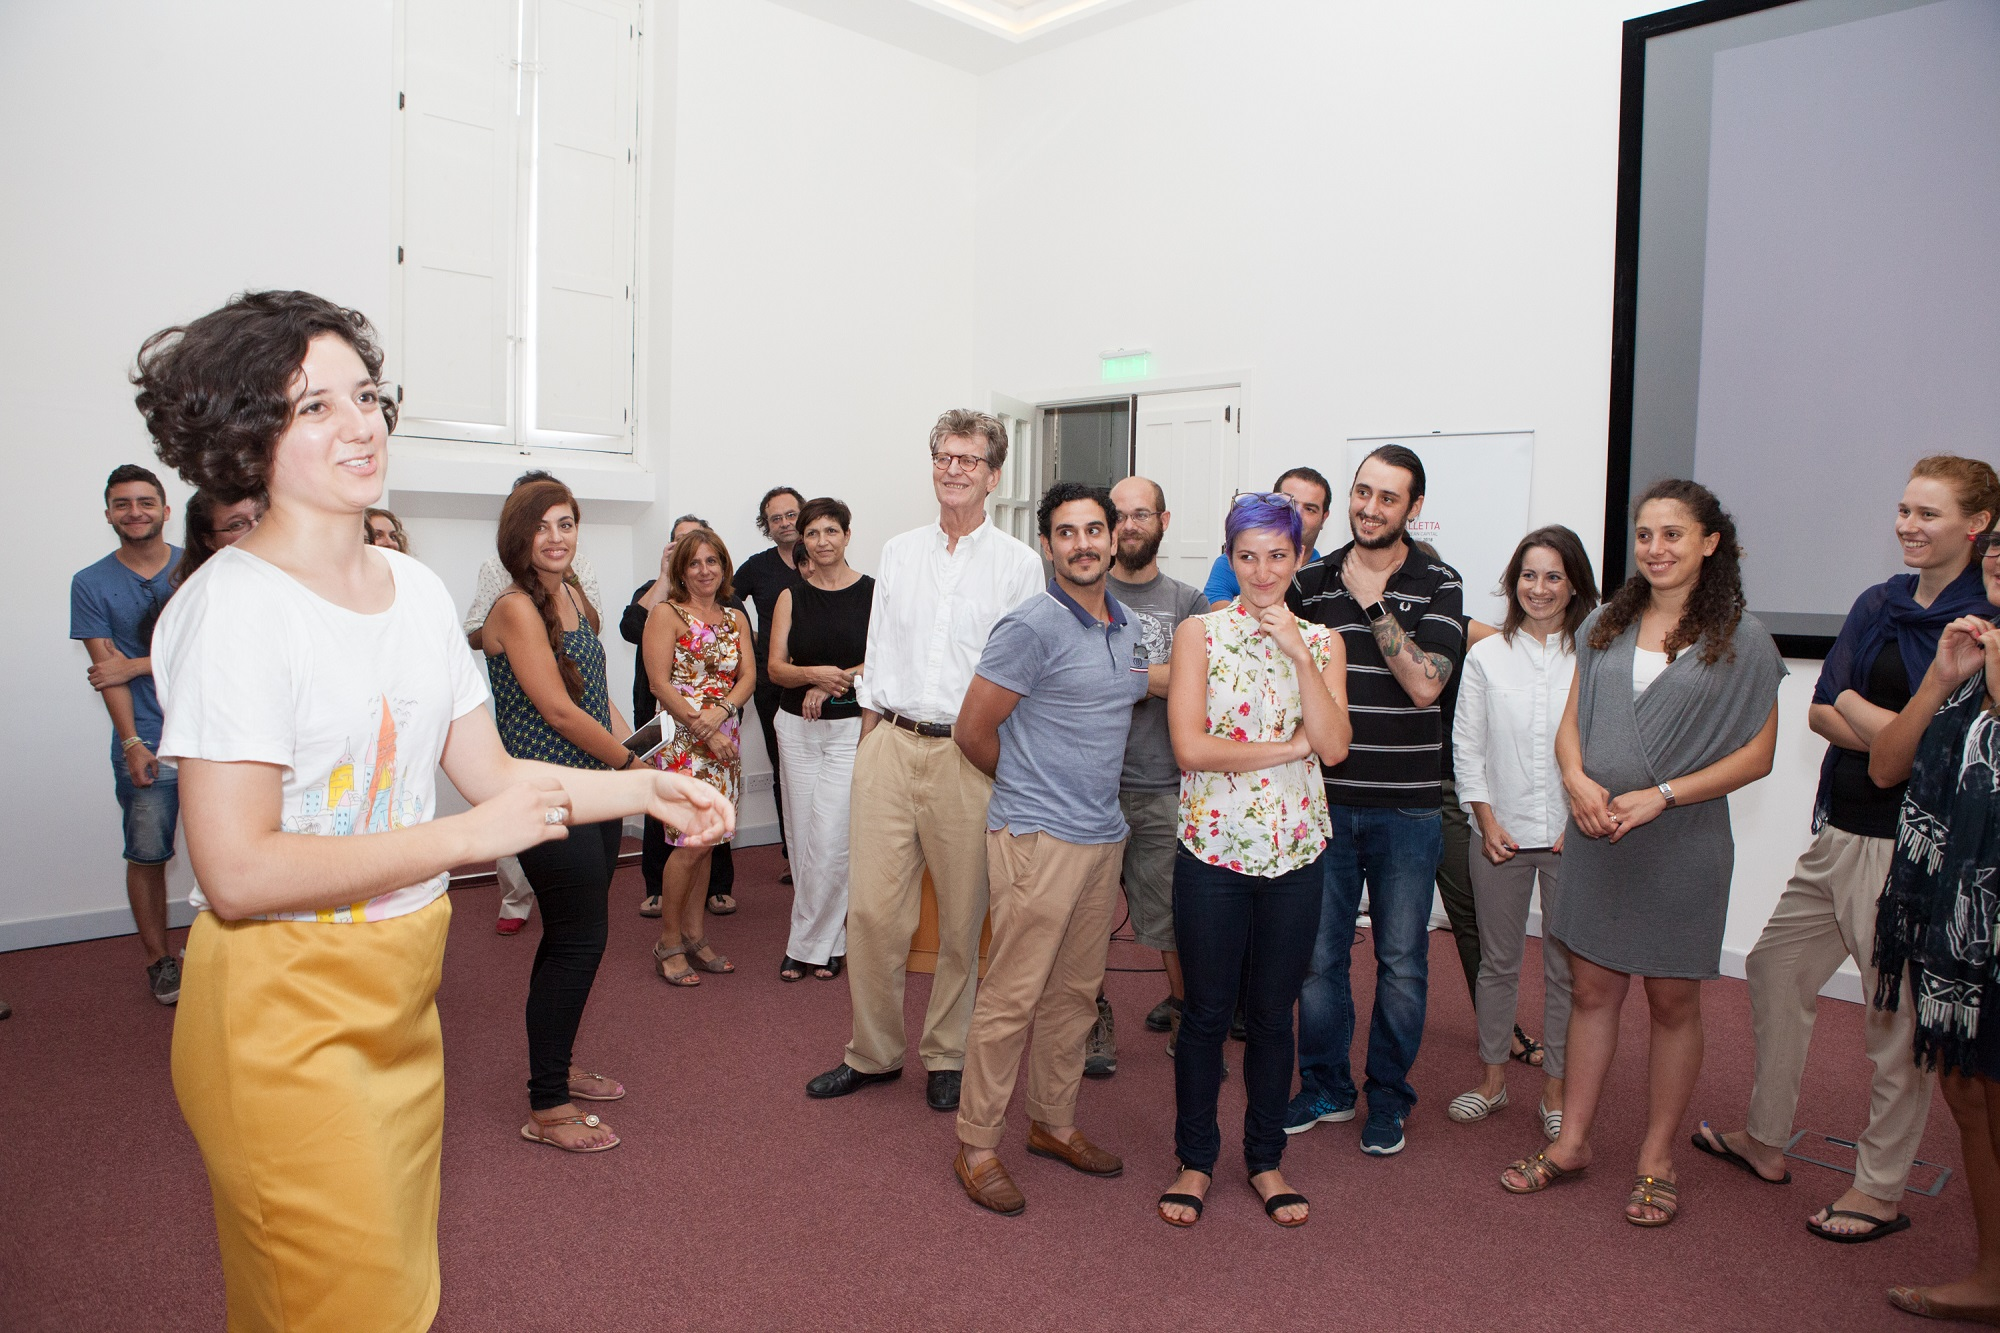 Participants from last year's Curatorial School